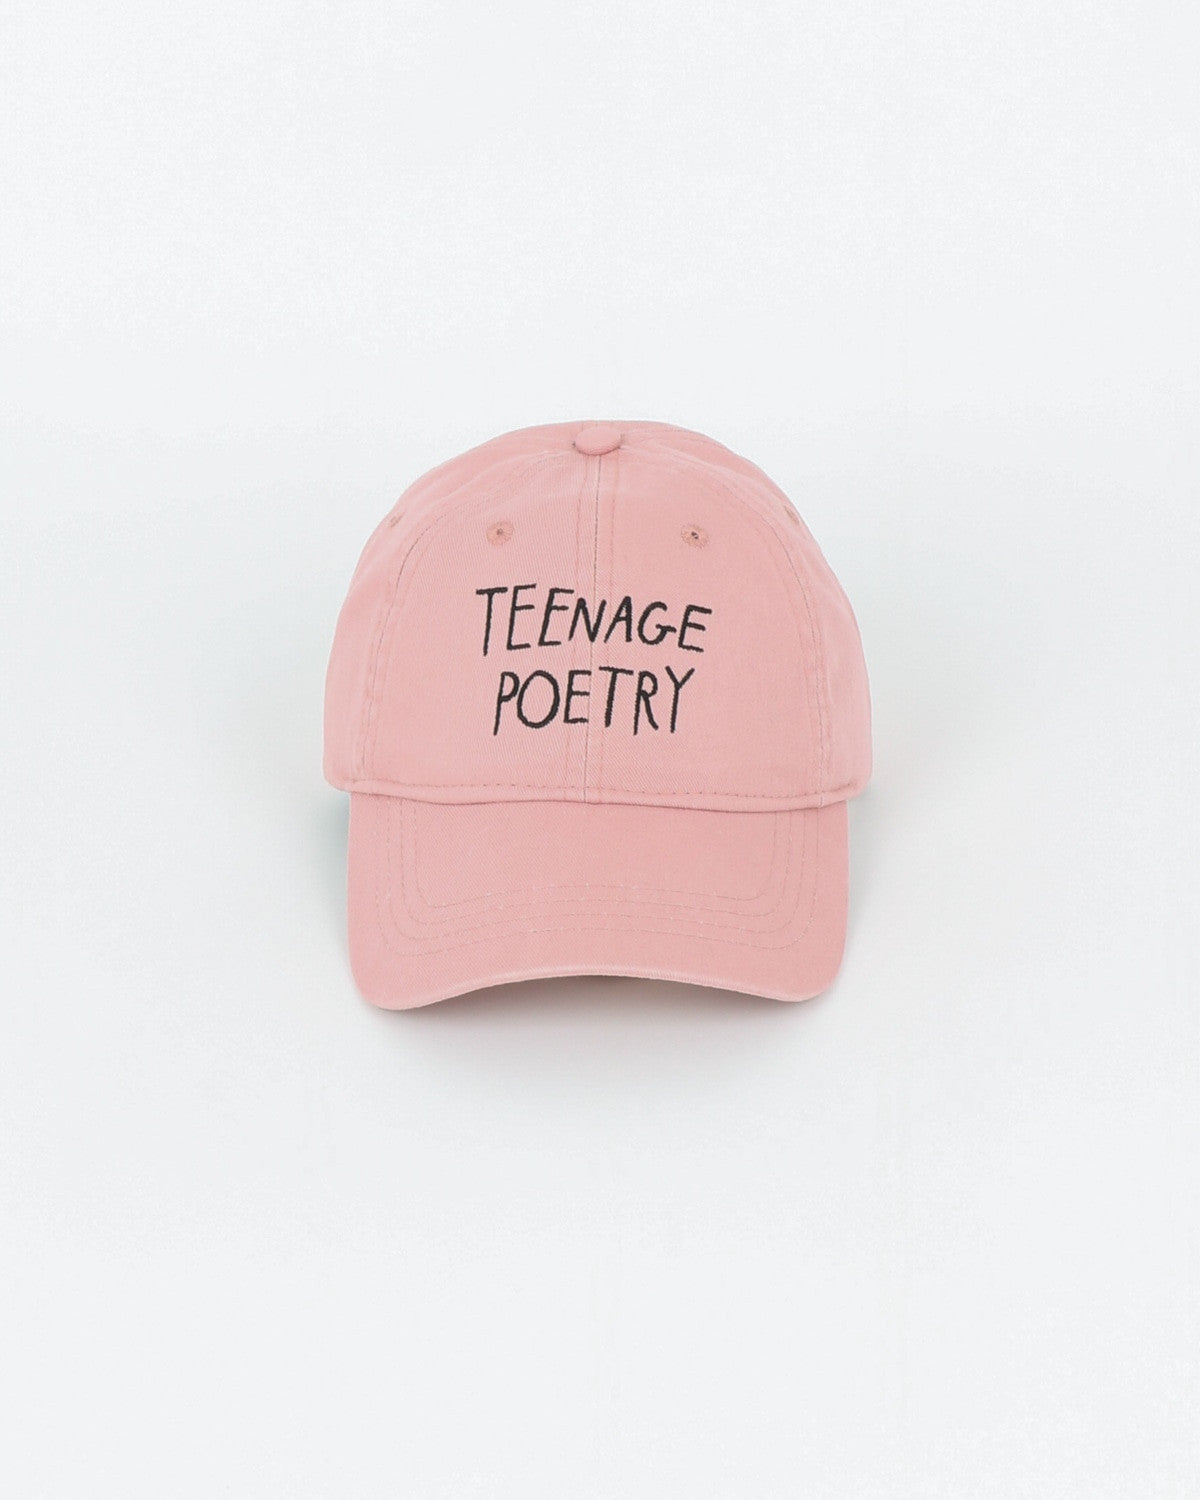 wood wood_low profile cap_teenage poetry_peach beige_view_1_2